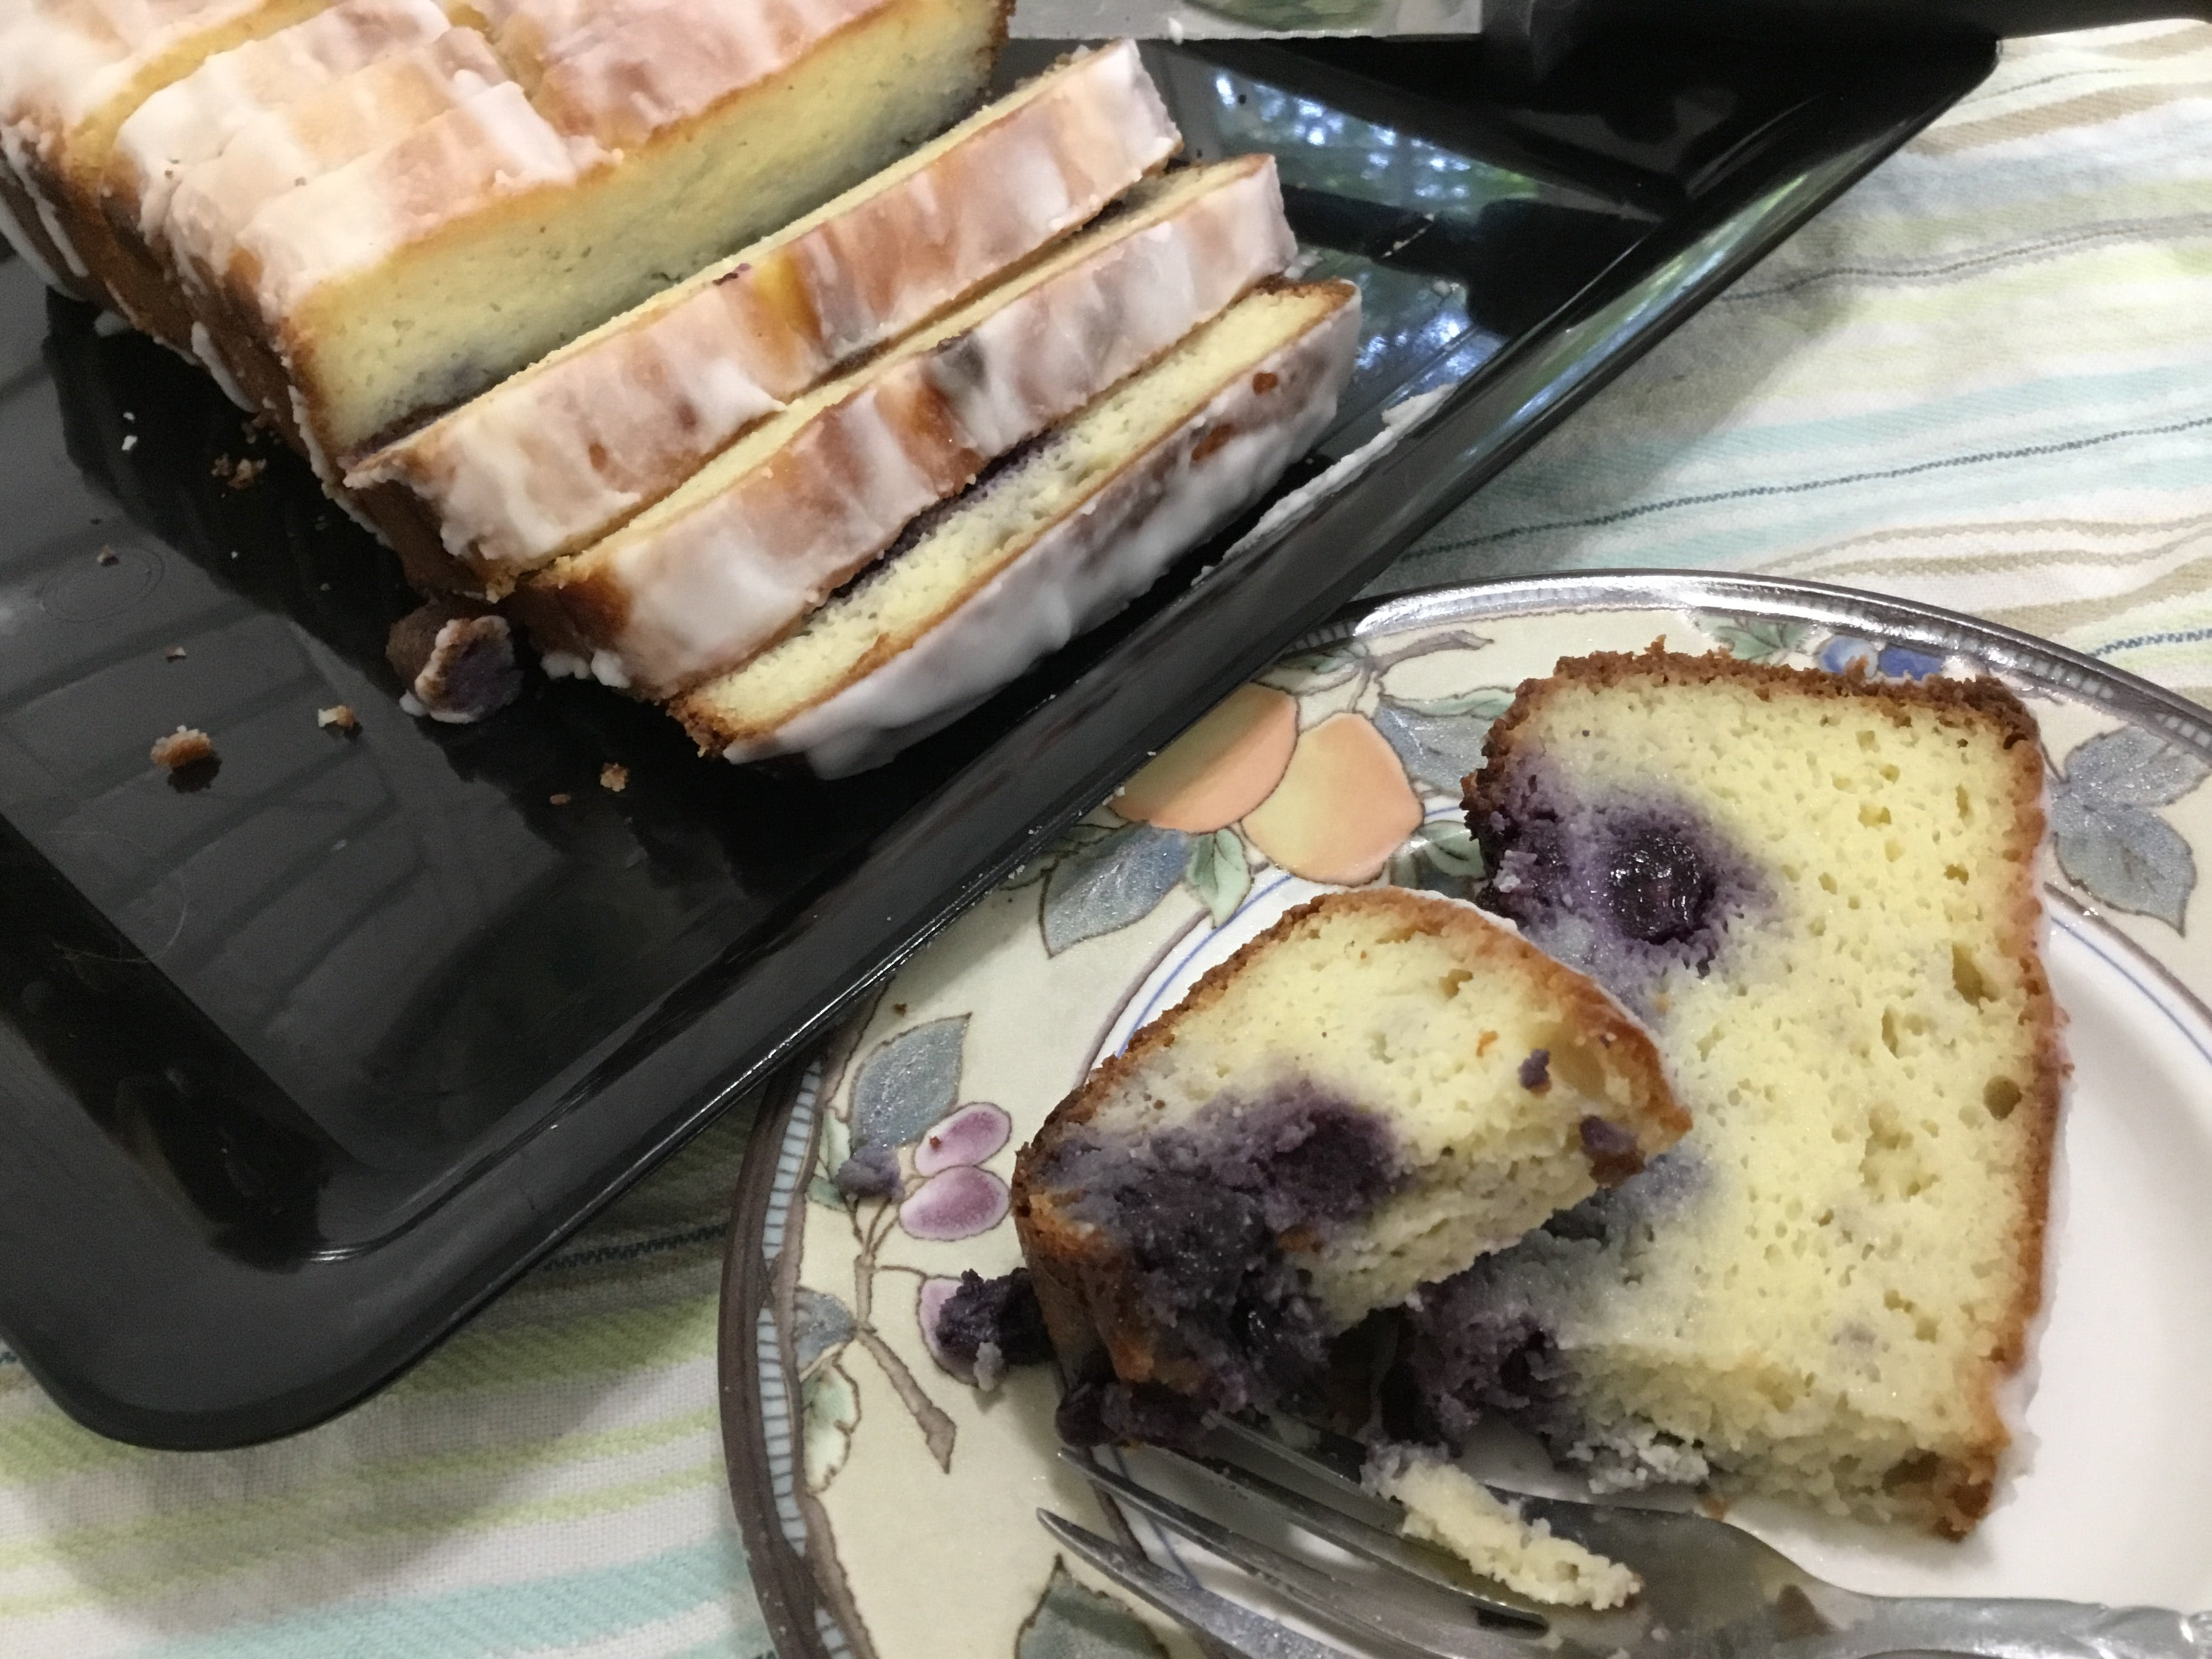 Blueberry Pound Cake with Lemon Glaze